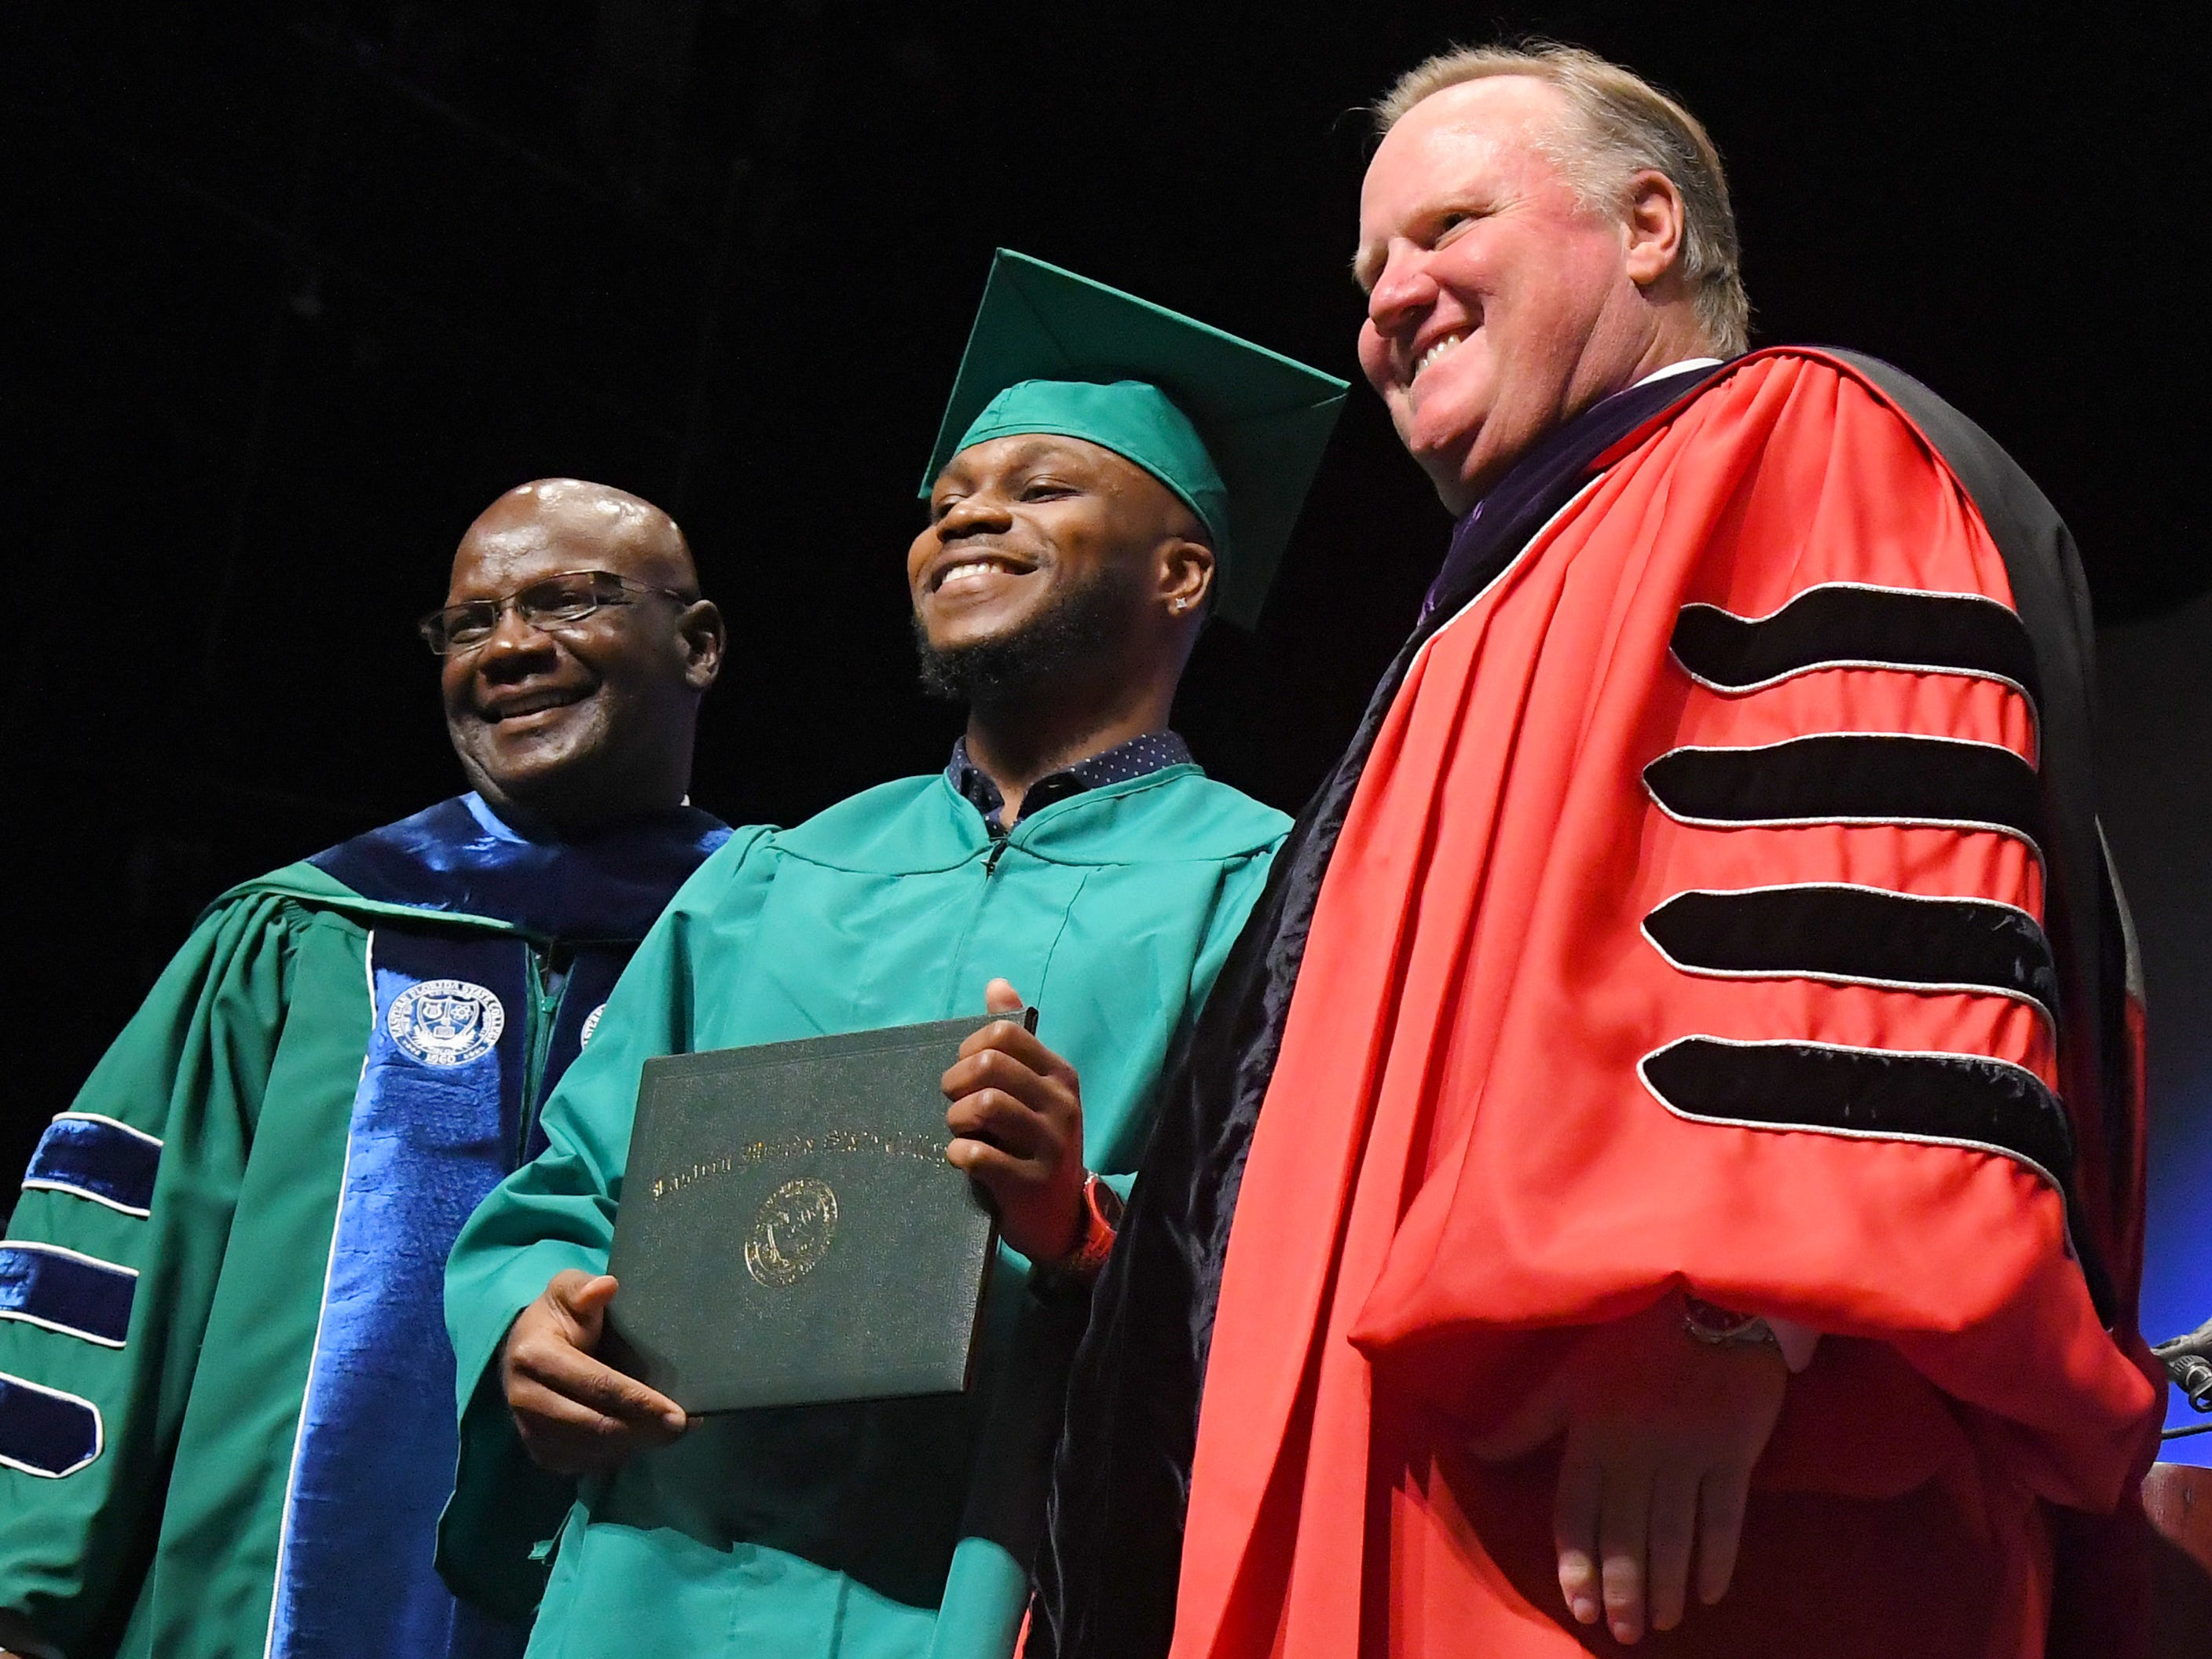 EFSC's 1,000th Bachelor's degree graduate is Derick Pierre, seen here flanked by Moses L. Harvin, Sr., of the Board of Trustees, and Jim Richey, president of EFSC. Graduates at the noon Eastern Florida State College 2019 Spring Commencement at the Melbourne campus. An additional commencement was held at 3:00 p.m.